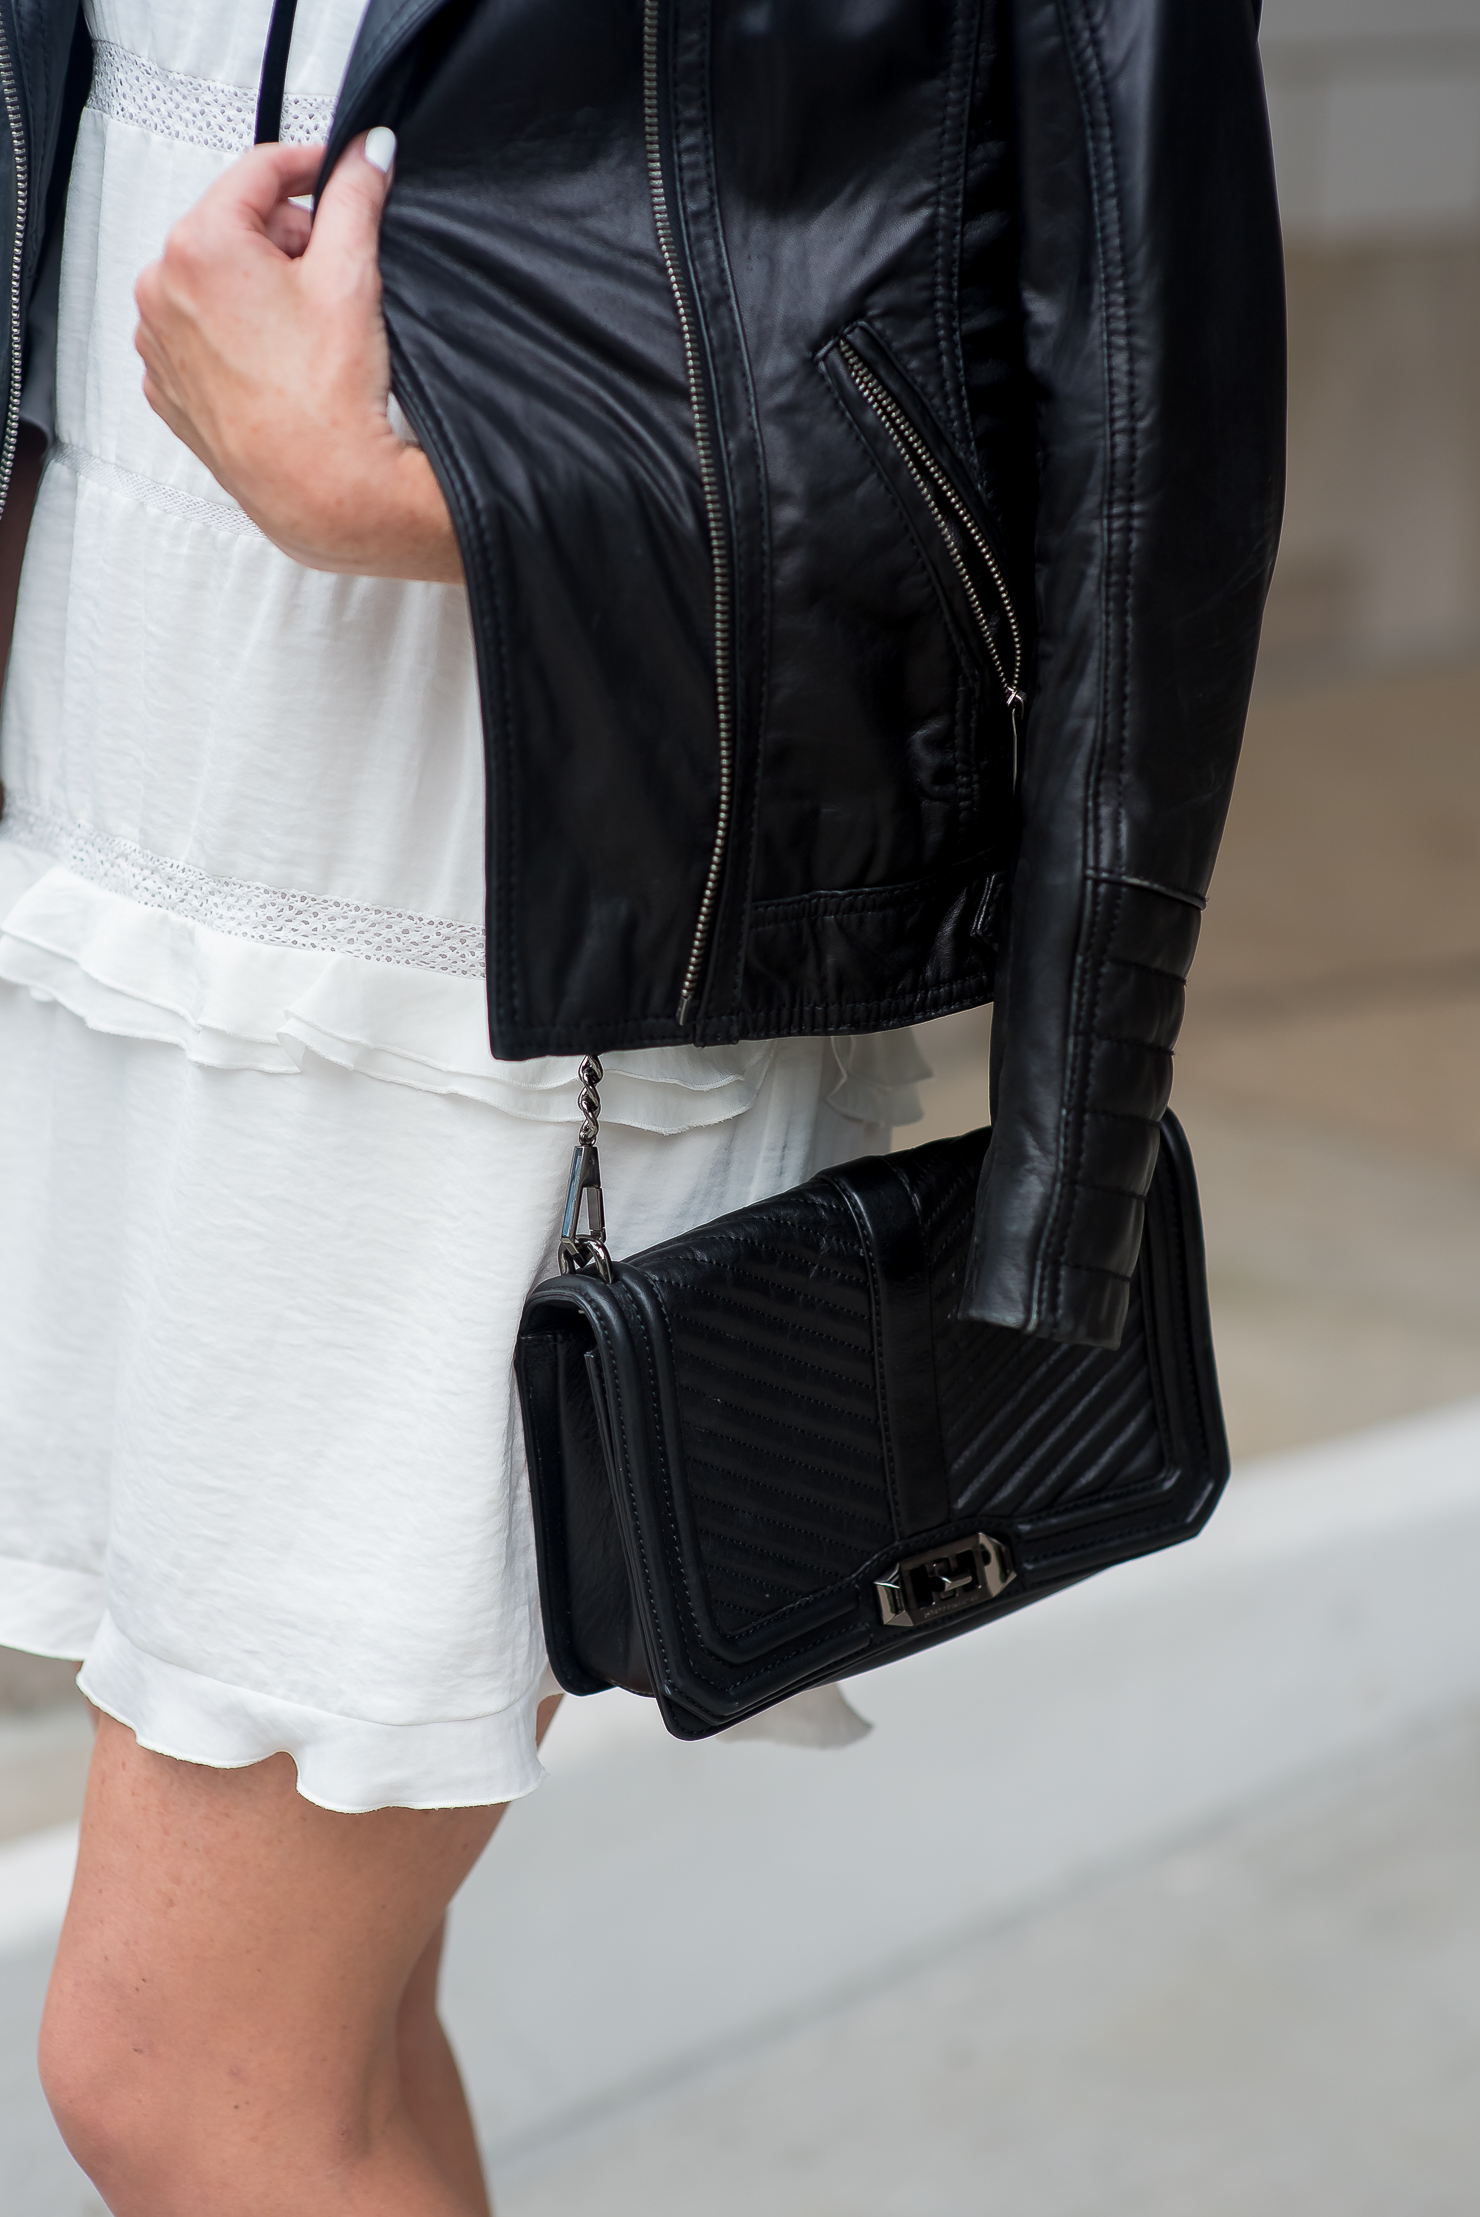 Leather jacket target - Who What Wear For Target White Ruffled Dress